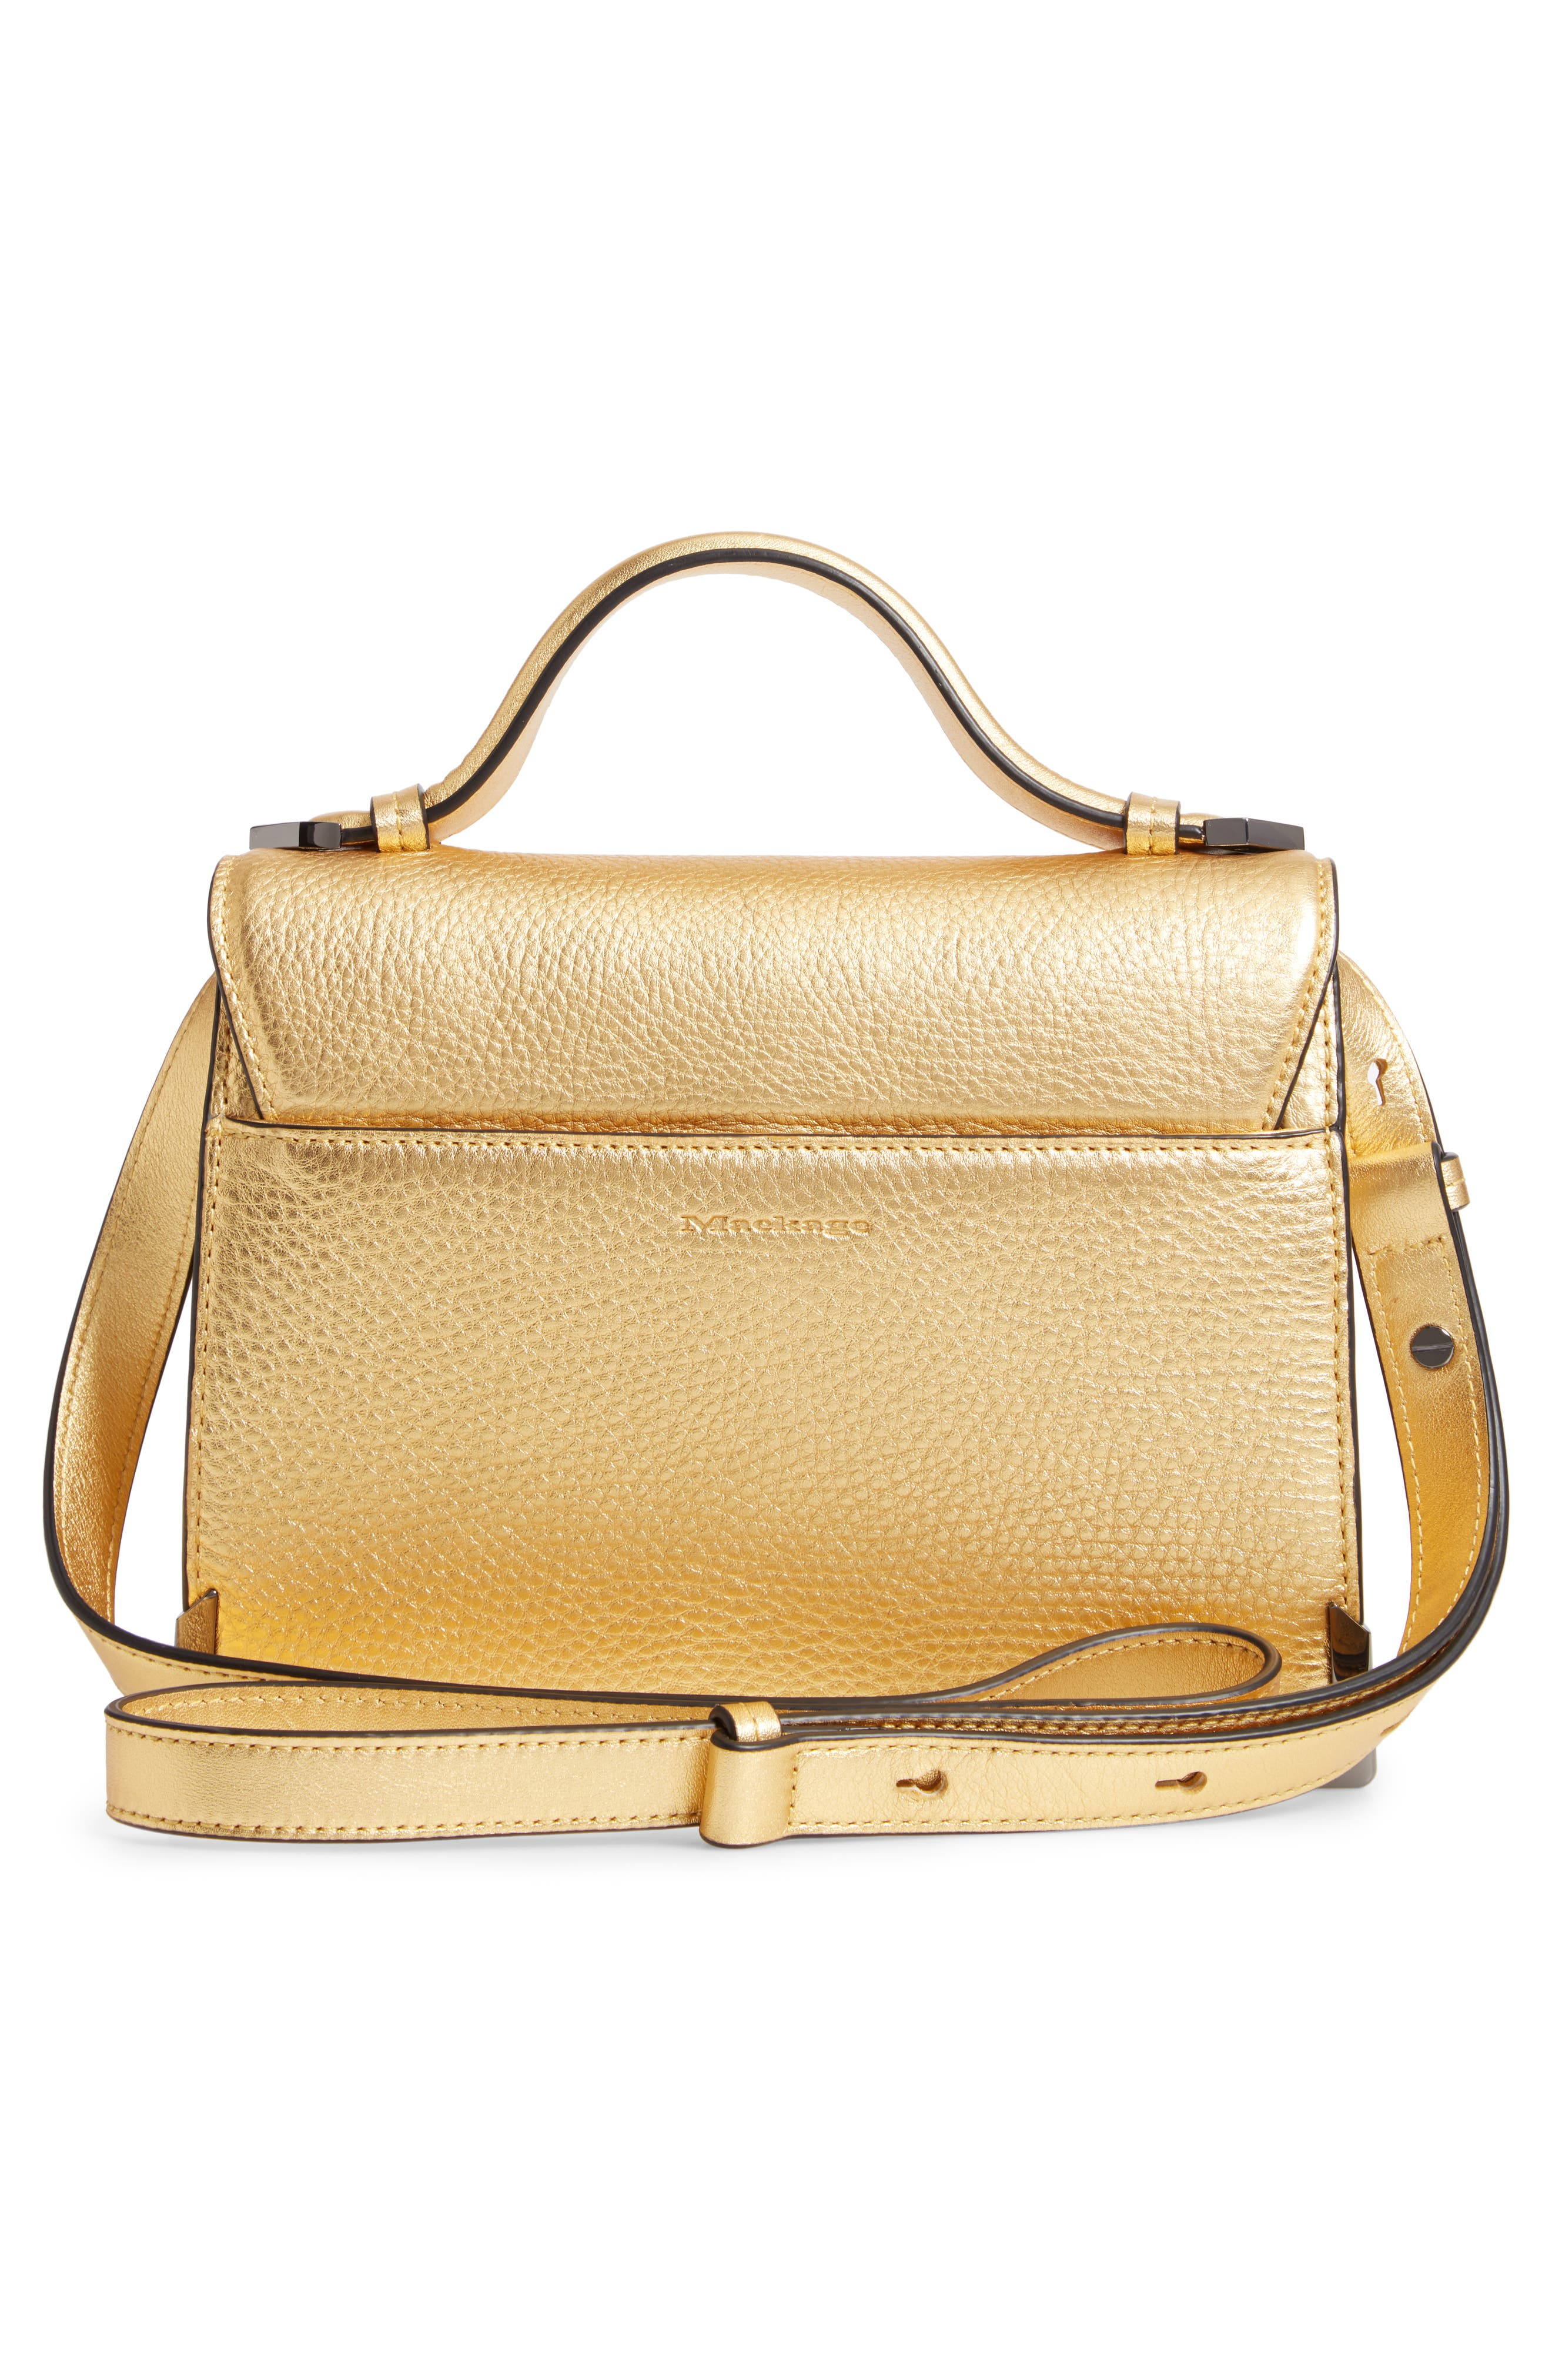 Keeley Leather Satchel,                             Alternate thumbnail 3, color,                             GOLD/ GUNMETAL